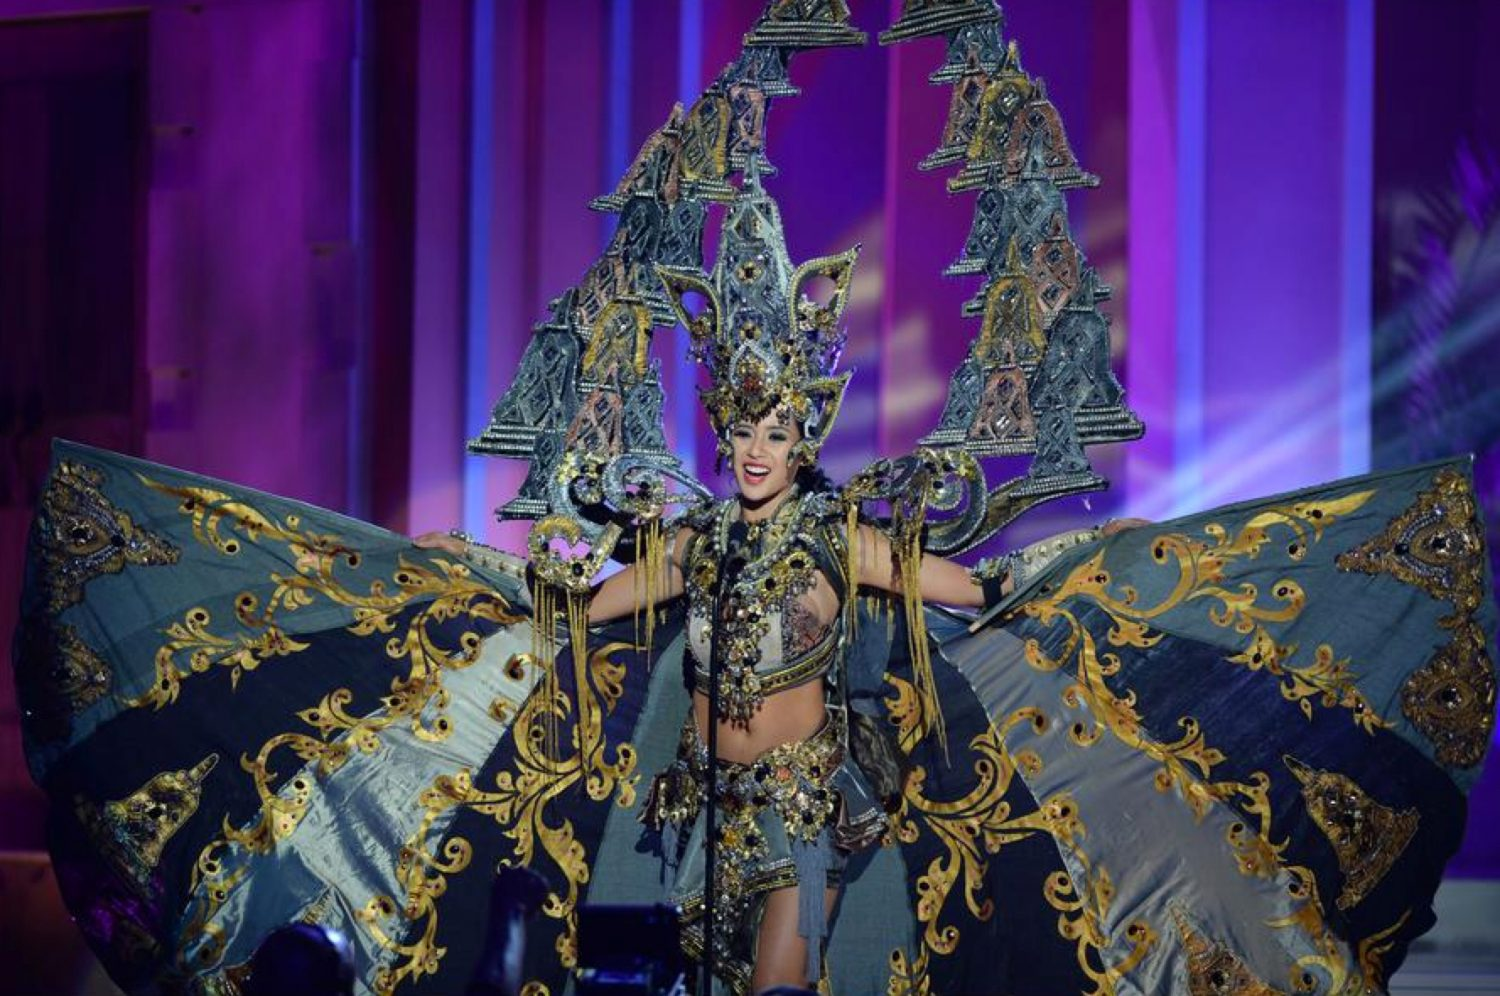 Most Extravagant Miss Universe Contestant Outfits